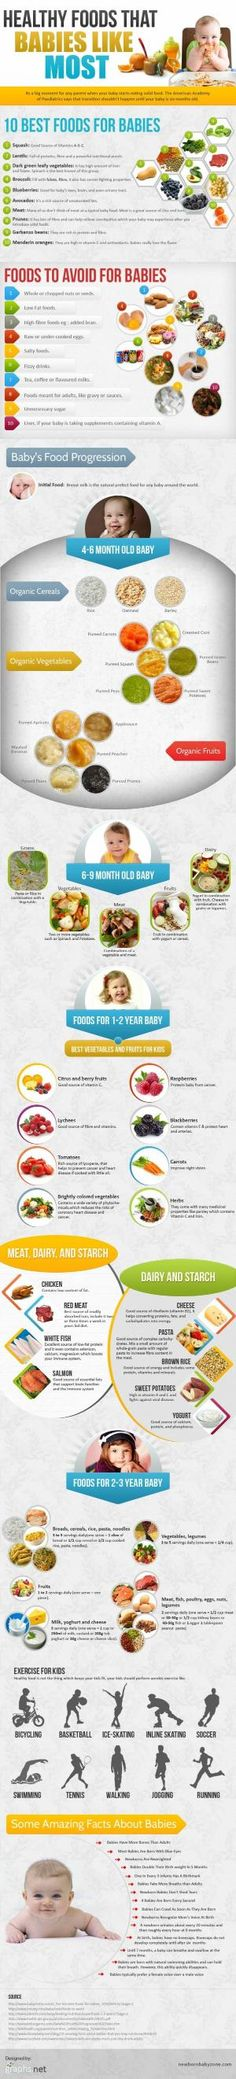 A healthy food guide for babies and toddlers (4 months to 3 years old) by queen